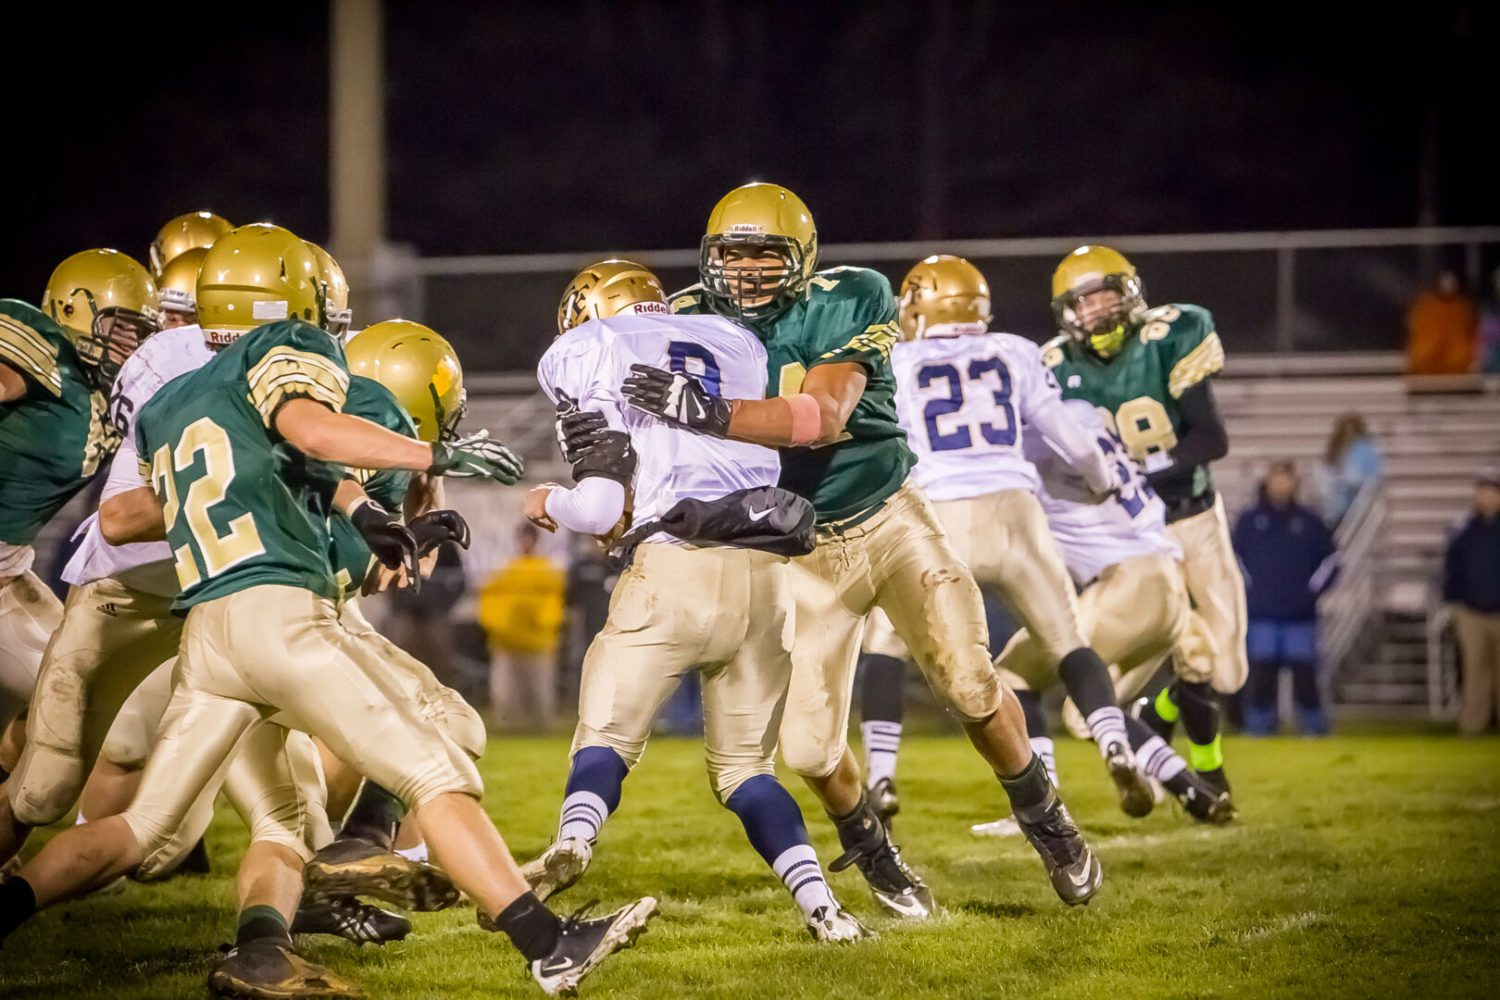 Crusaders hope for repeat of last year in regional title clash with Mendon